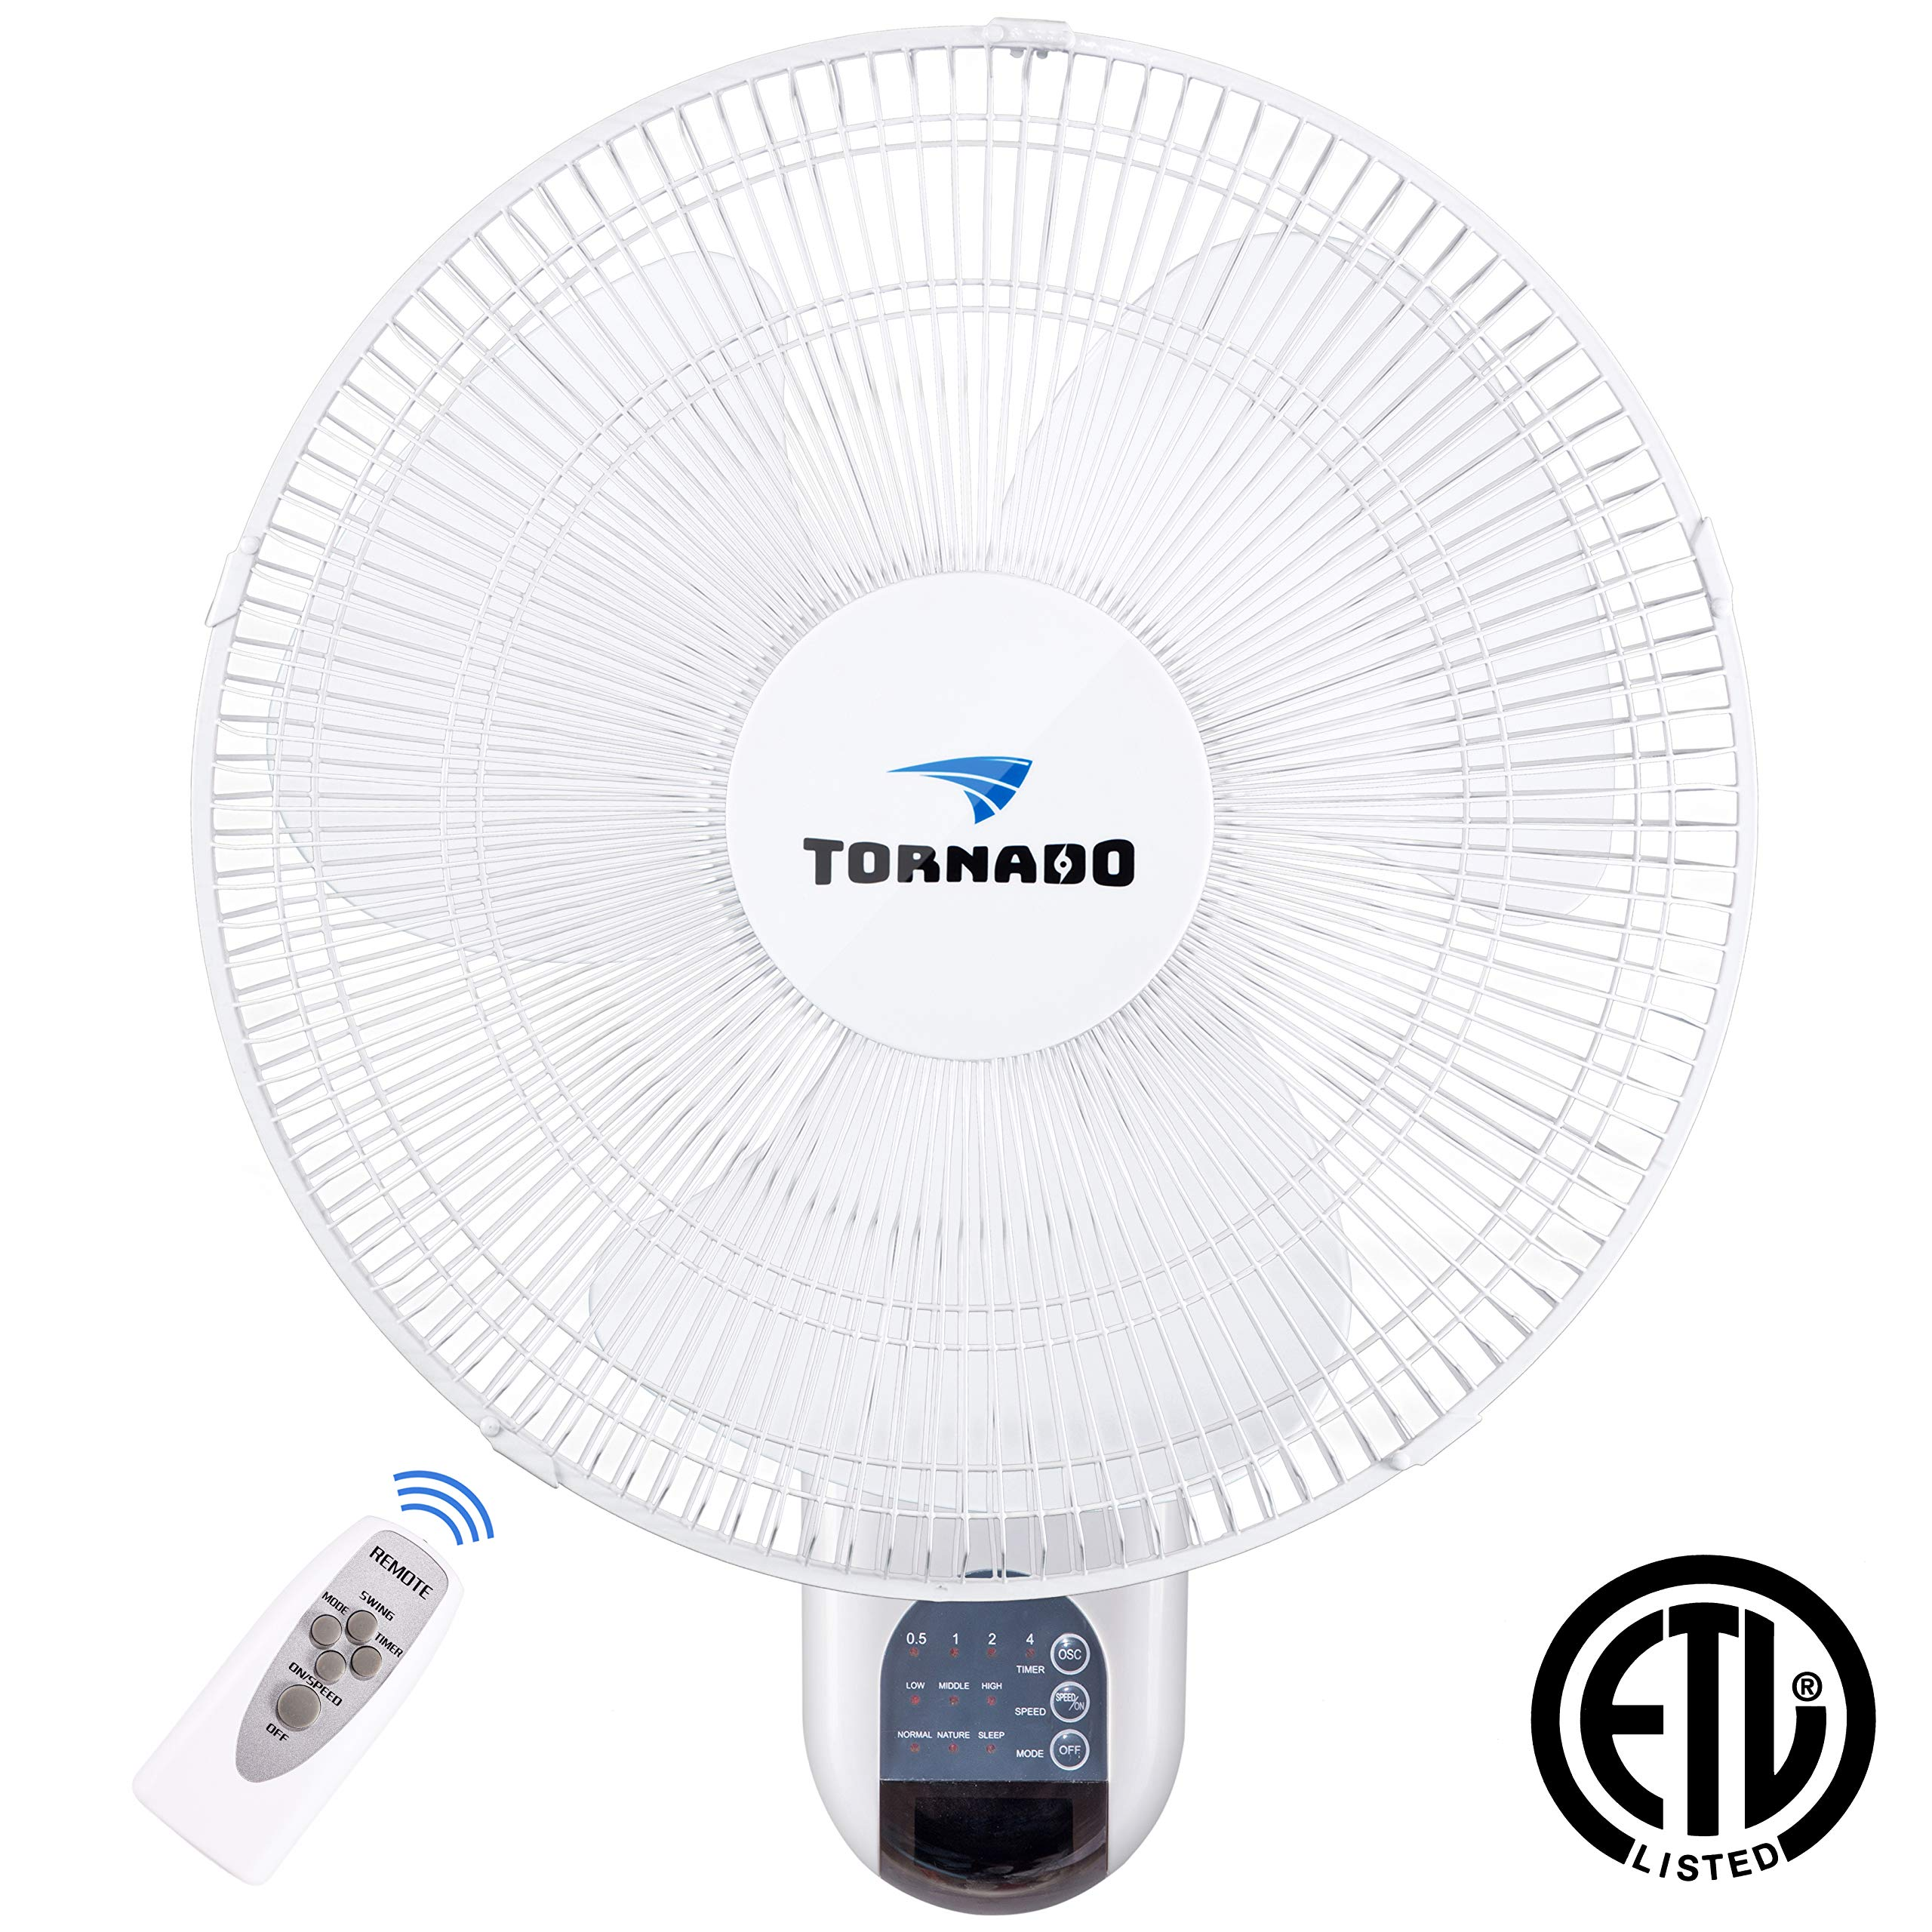 Tornado 16 Inch Digital Wall Mount Fan - Remote Control Included - 3 Speed Settings - 3 Oscillating Settings - 65 Inches Power Cord - ETL Safety Listed by Tornado